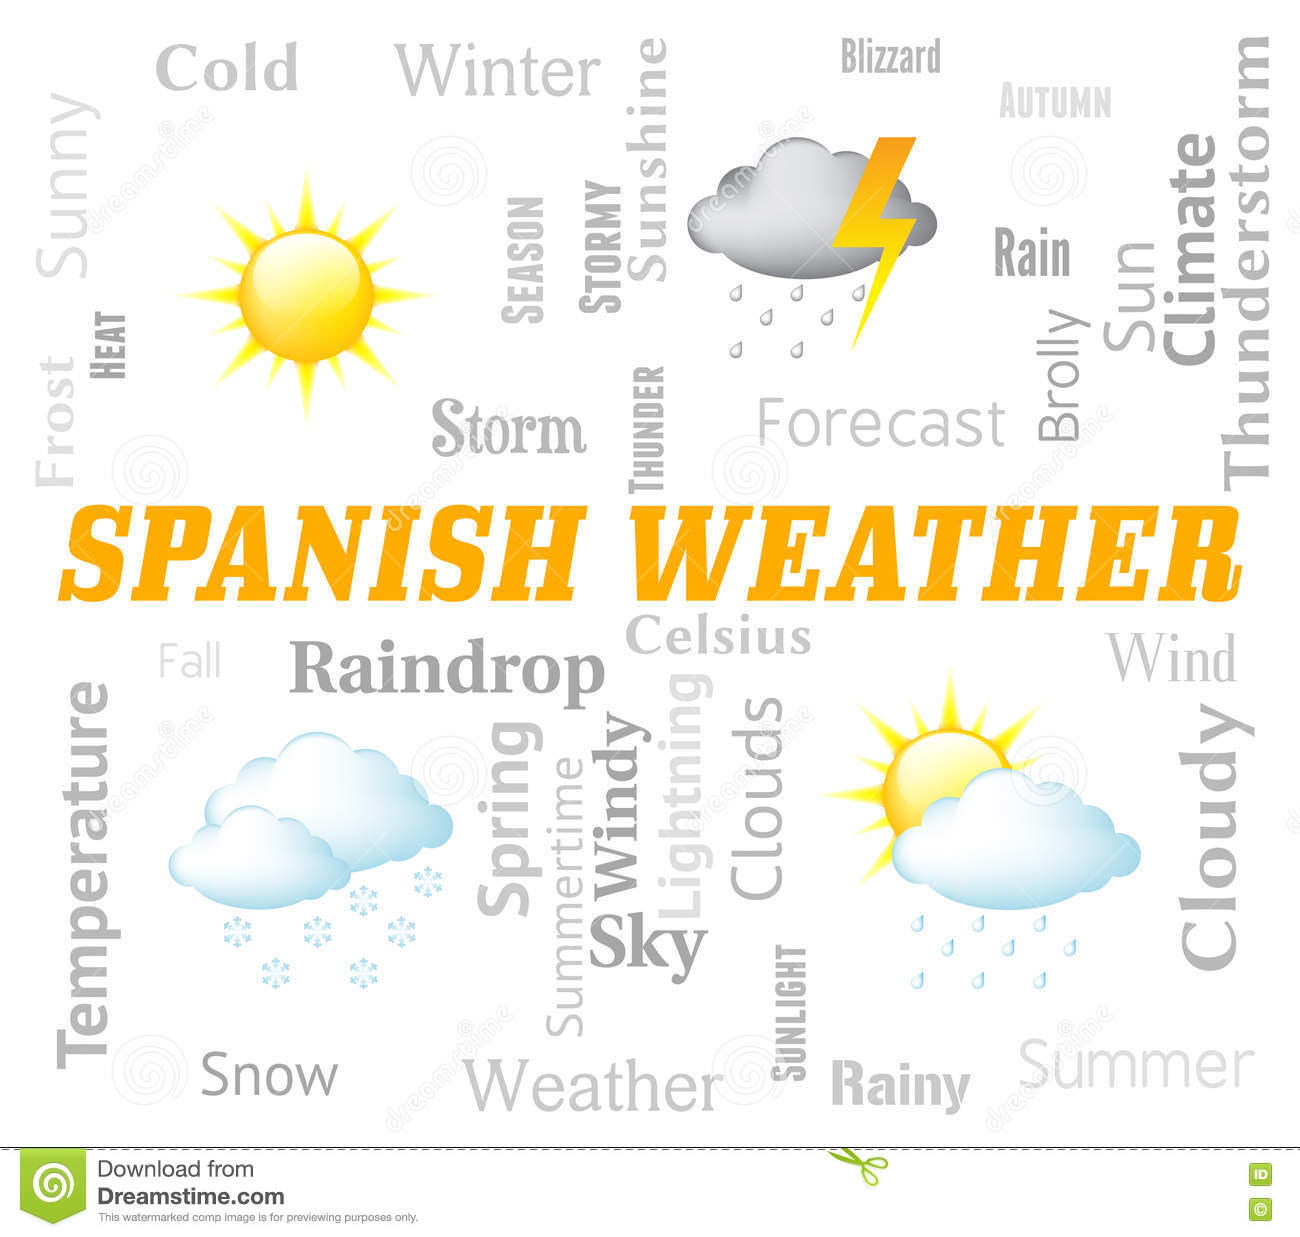 Spanish Weather Represents Meteorological Conditions And